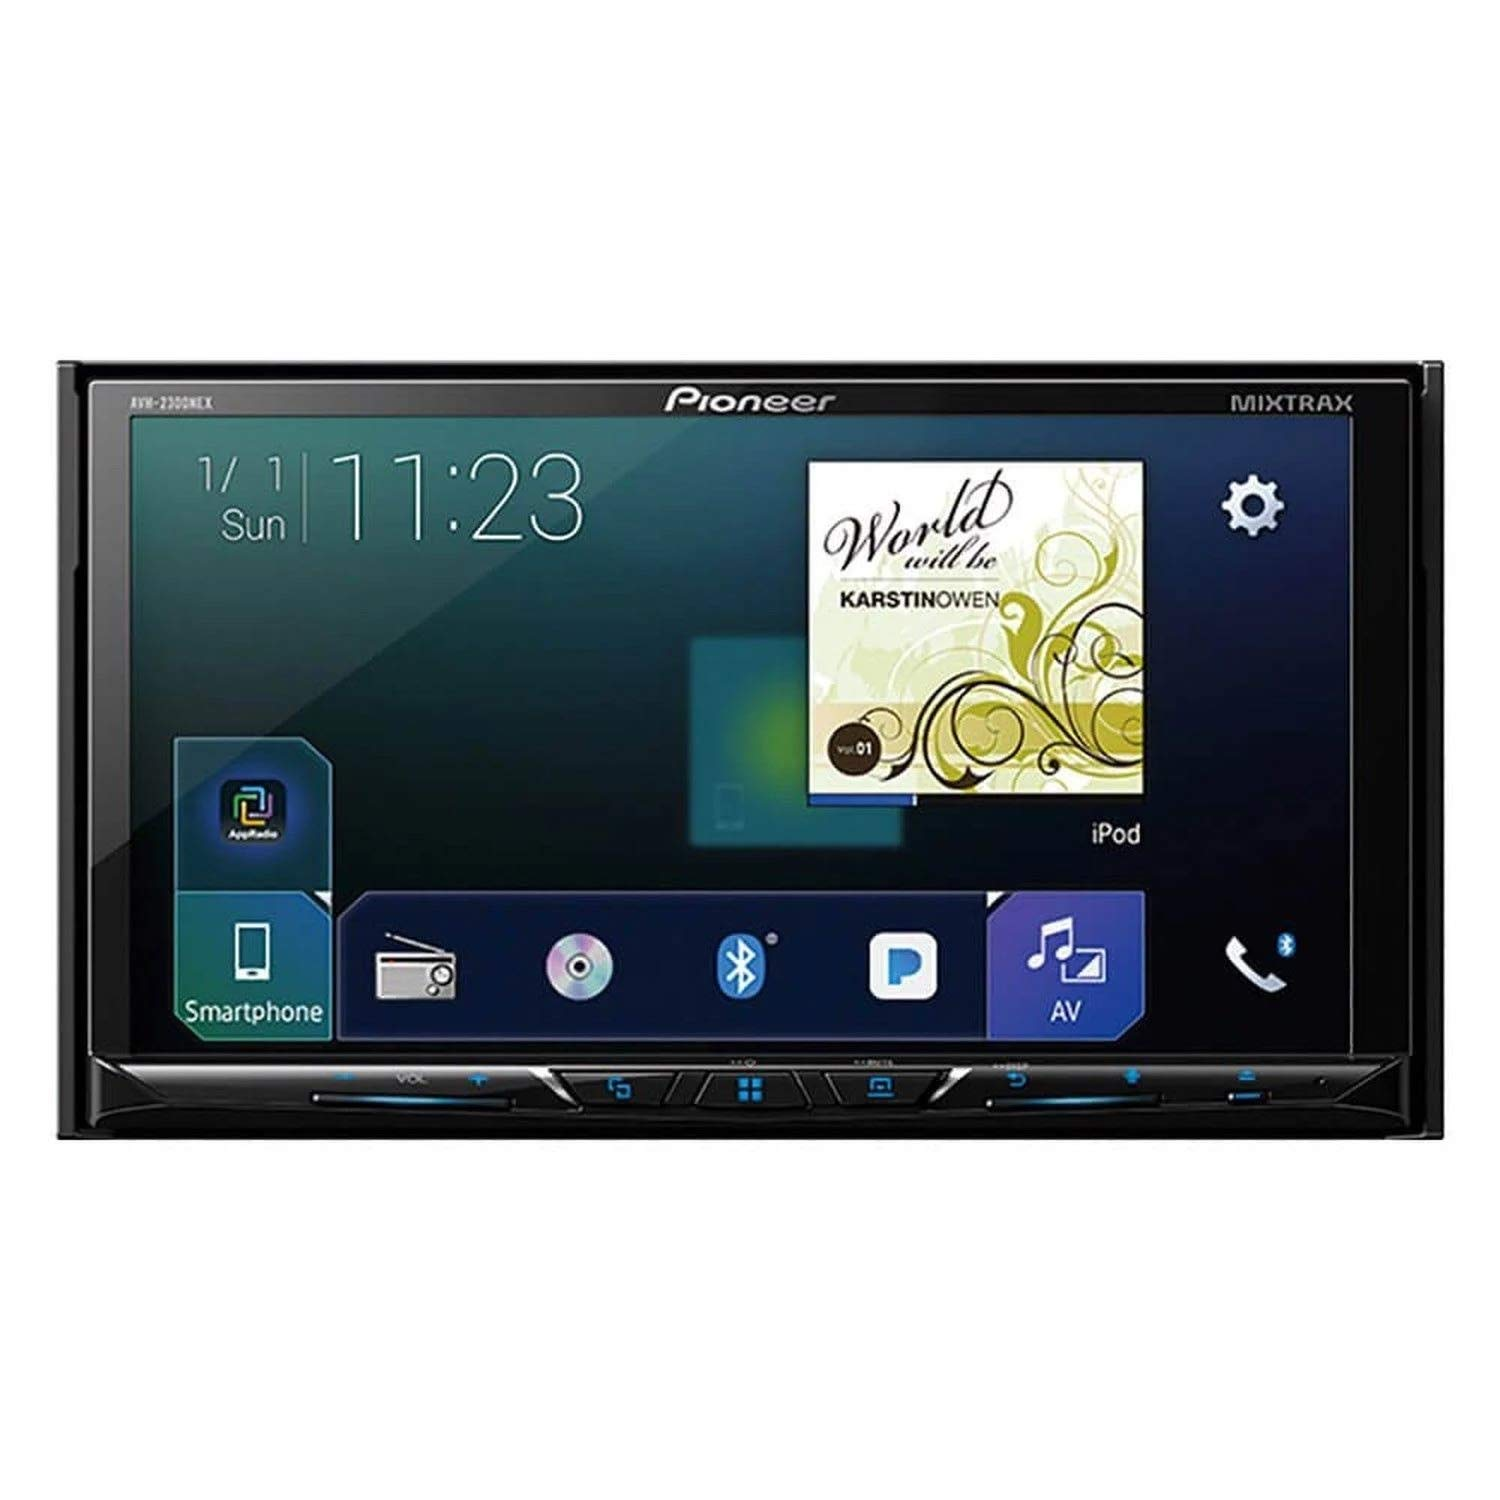 Amazoncom Pioneer Avh 2300nex Multimedia Dvd Receiver With 7 Wvga